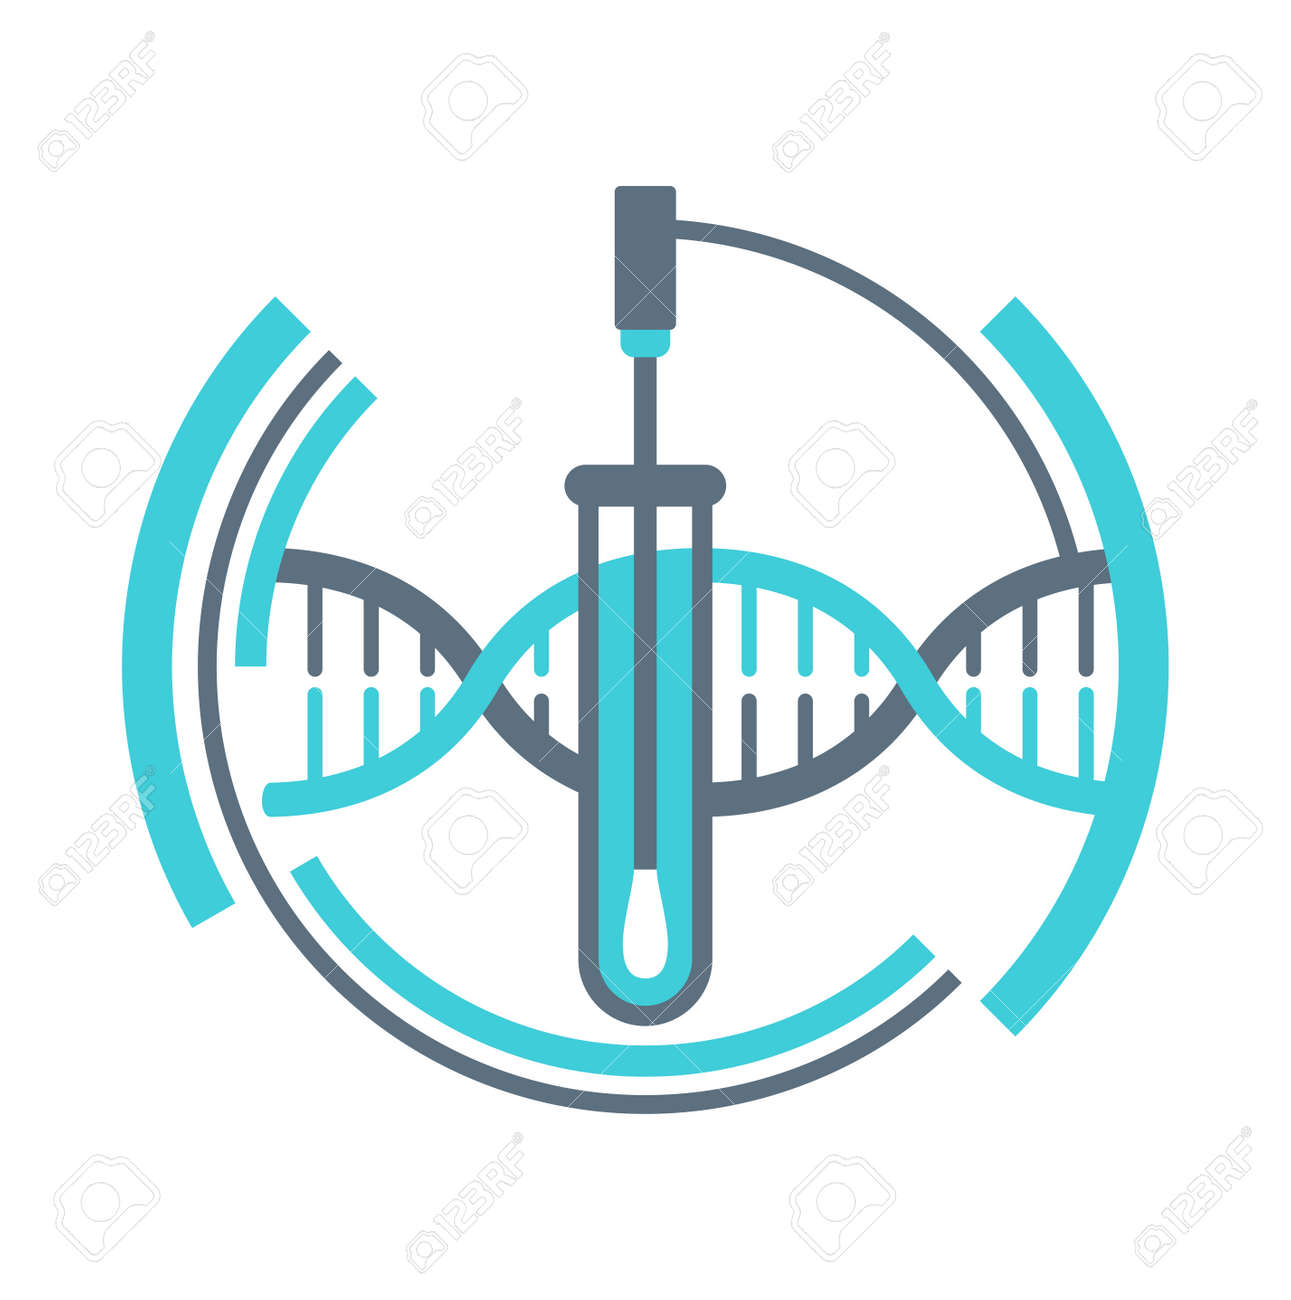 PCR testing icon with swab stick and test tube - polymerase chain reaction - disease prevention and fight against coronavirus pandemic - vector emblem - 160658971